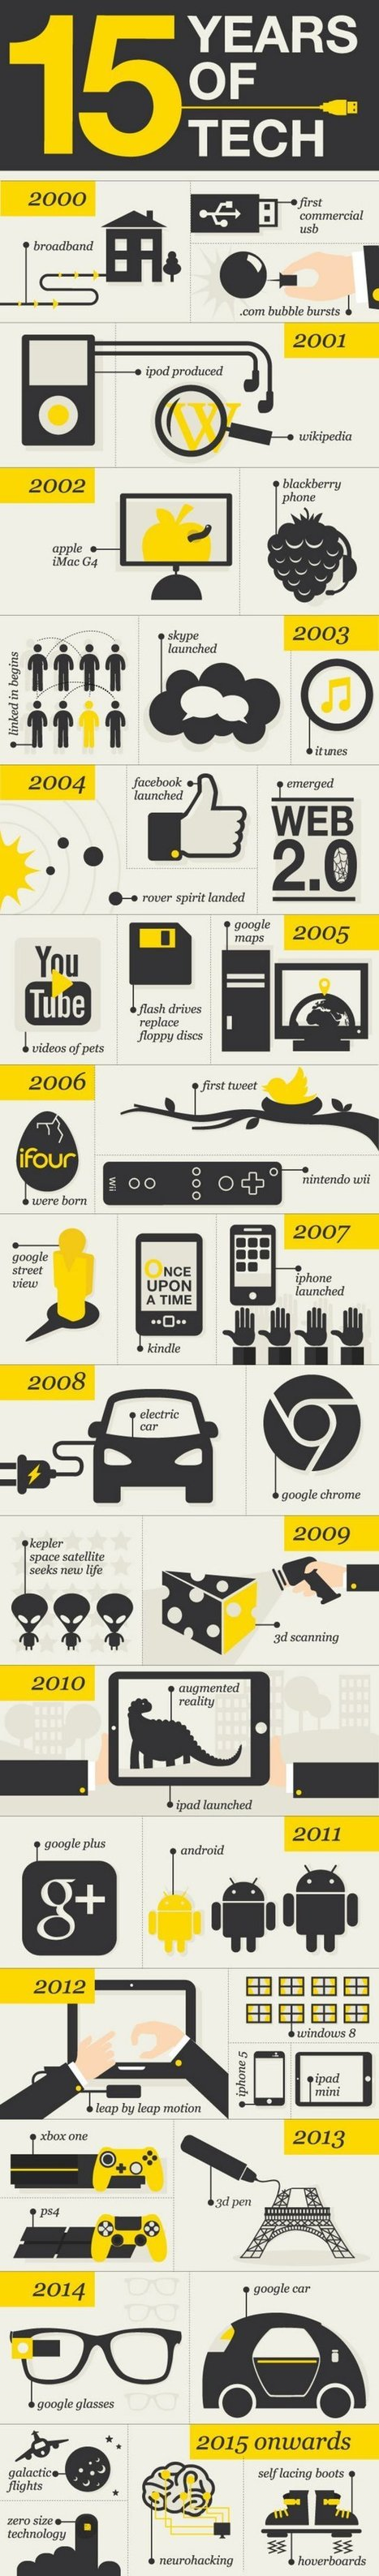 The Last 15 Years of Technological Advancement [Infographic] | | Disseny instrucional (DI) | Scoop.it